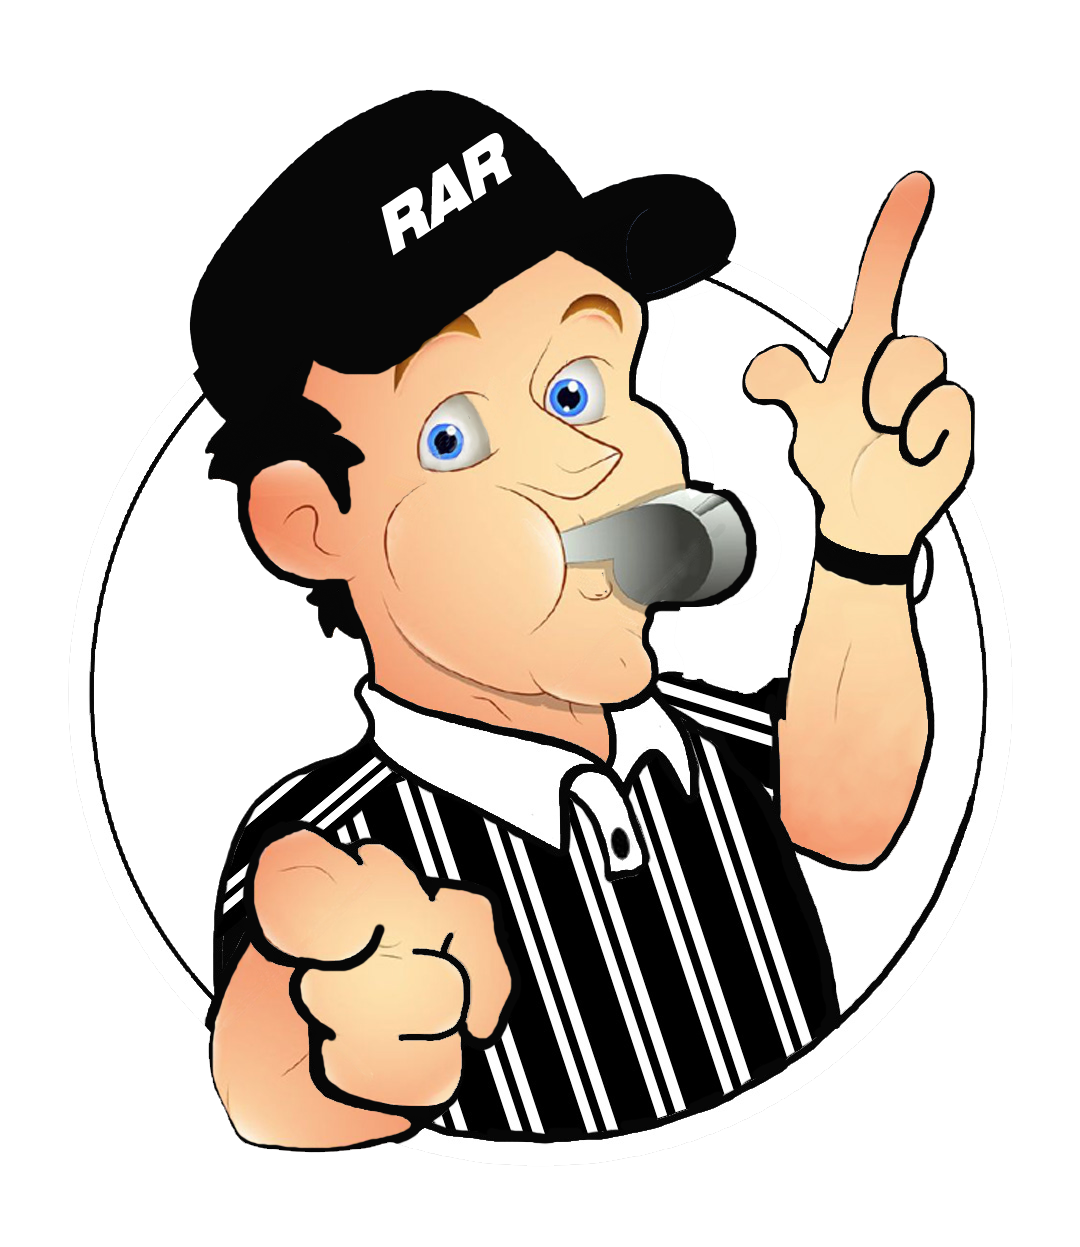 Referee football clipart png freeuse download Basketball Referee in San Francisco, CA, United States ... png freeuse download